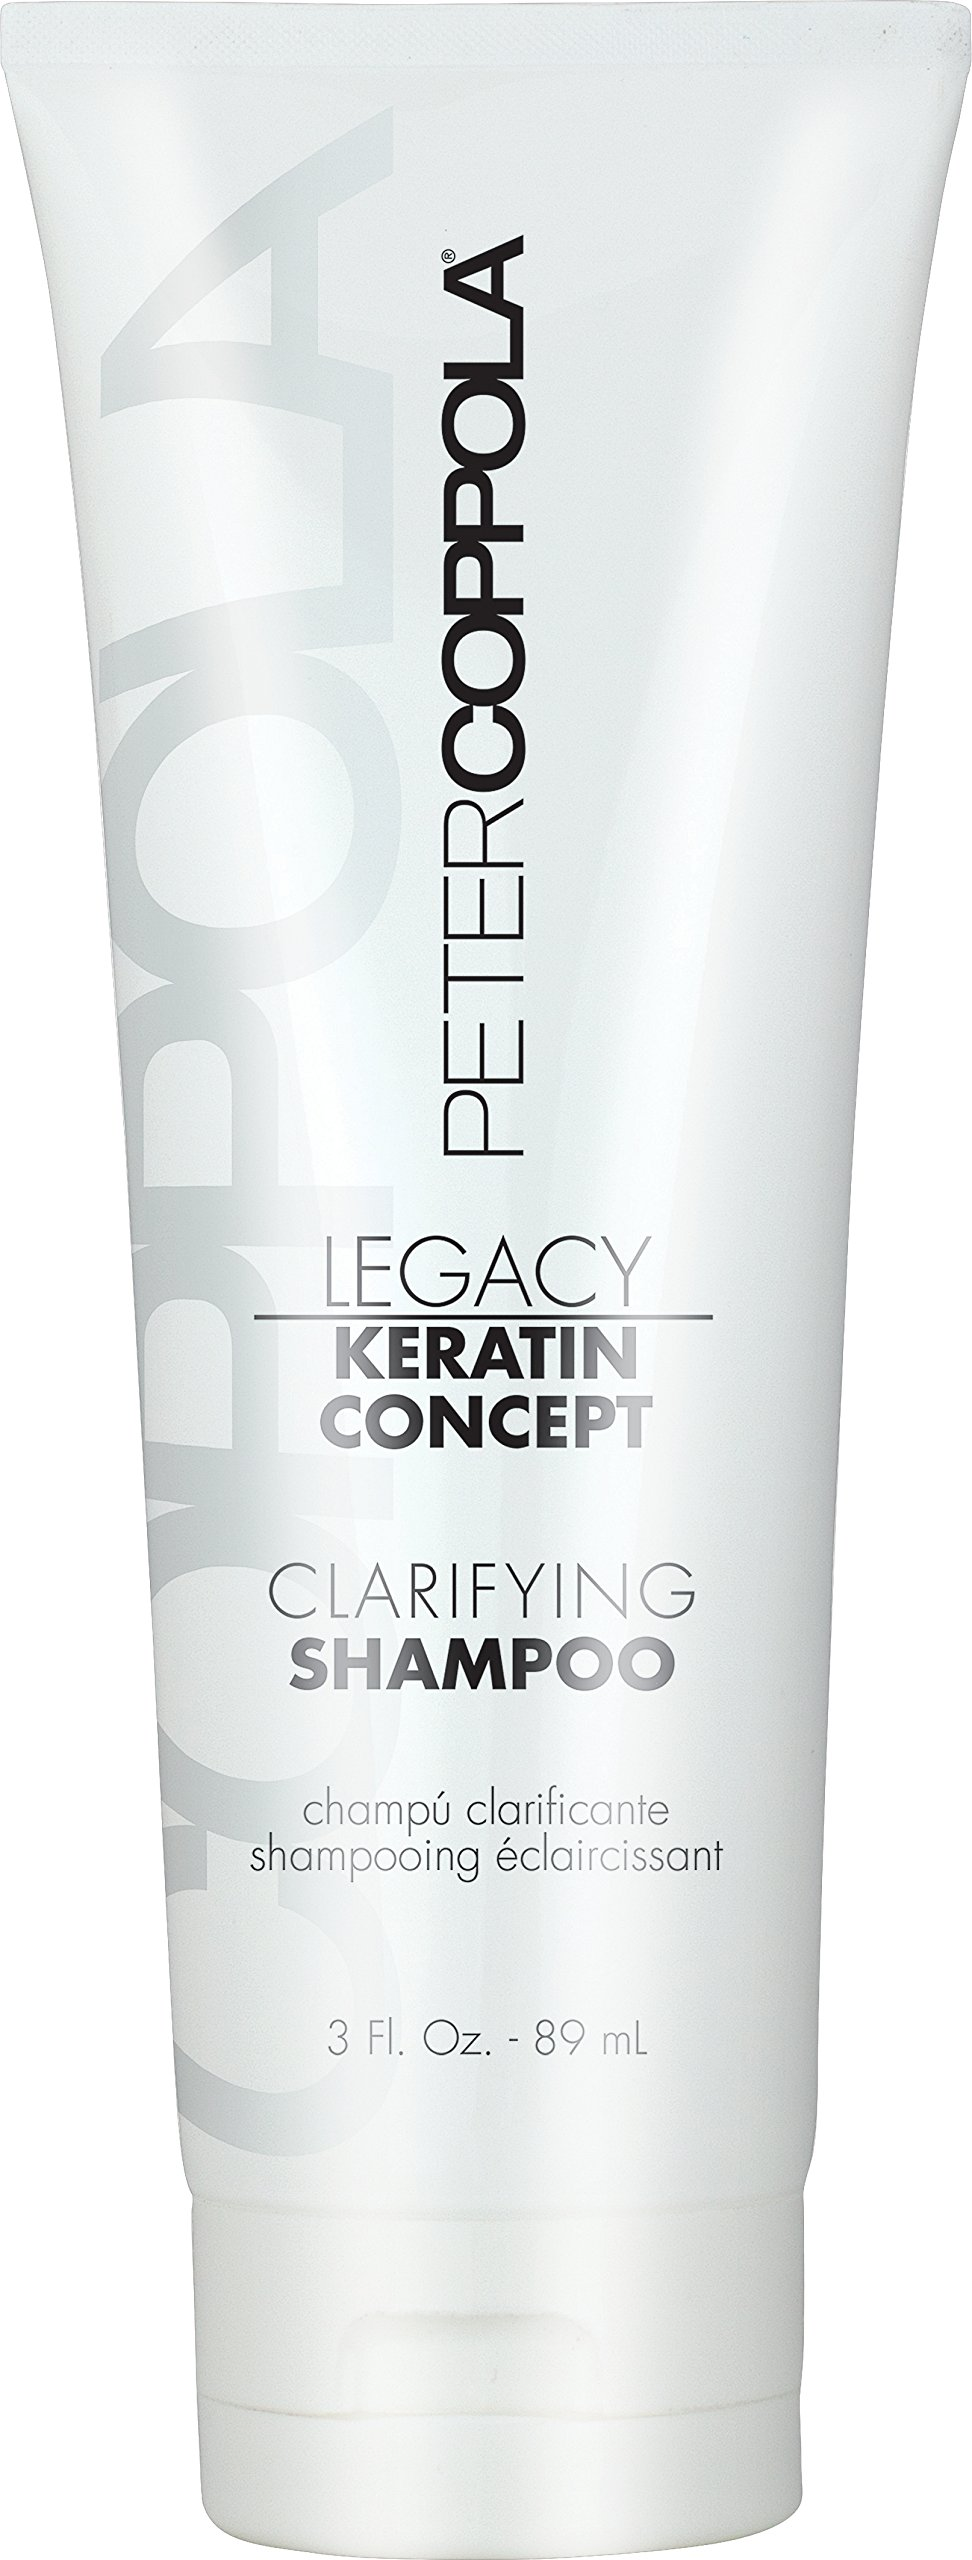 PETER COPPOLA Coppola Keratin Smoothing Treatment Formaldehyde & Aldehyde-Free (Treatment Kit with Aftercare) by Peter Coppola (Image #2)